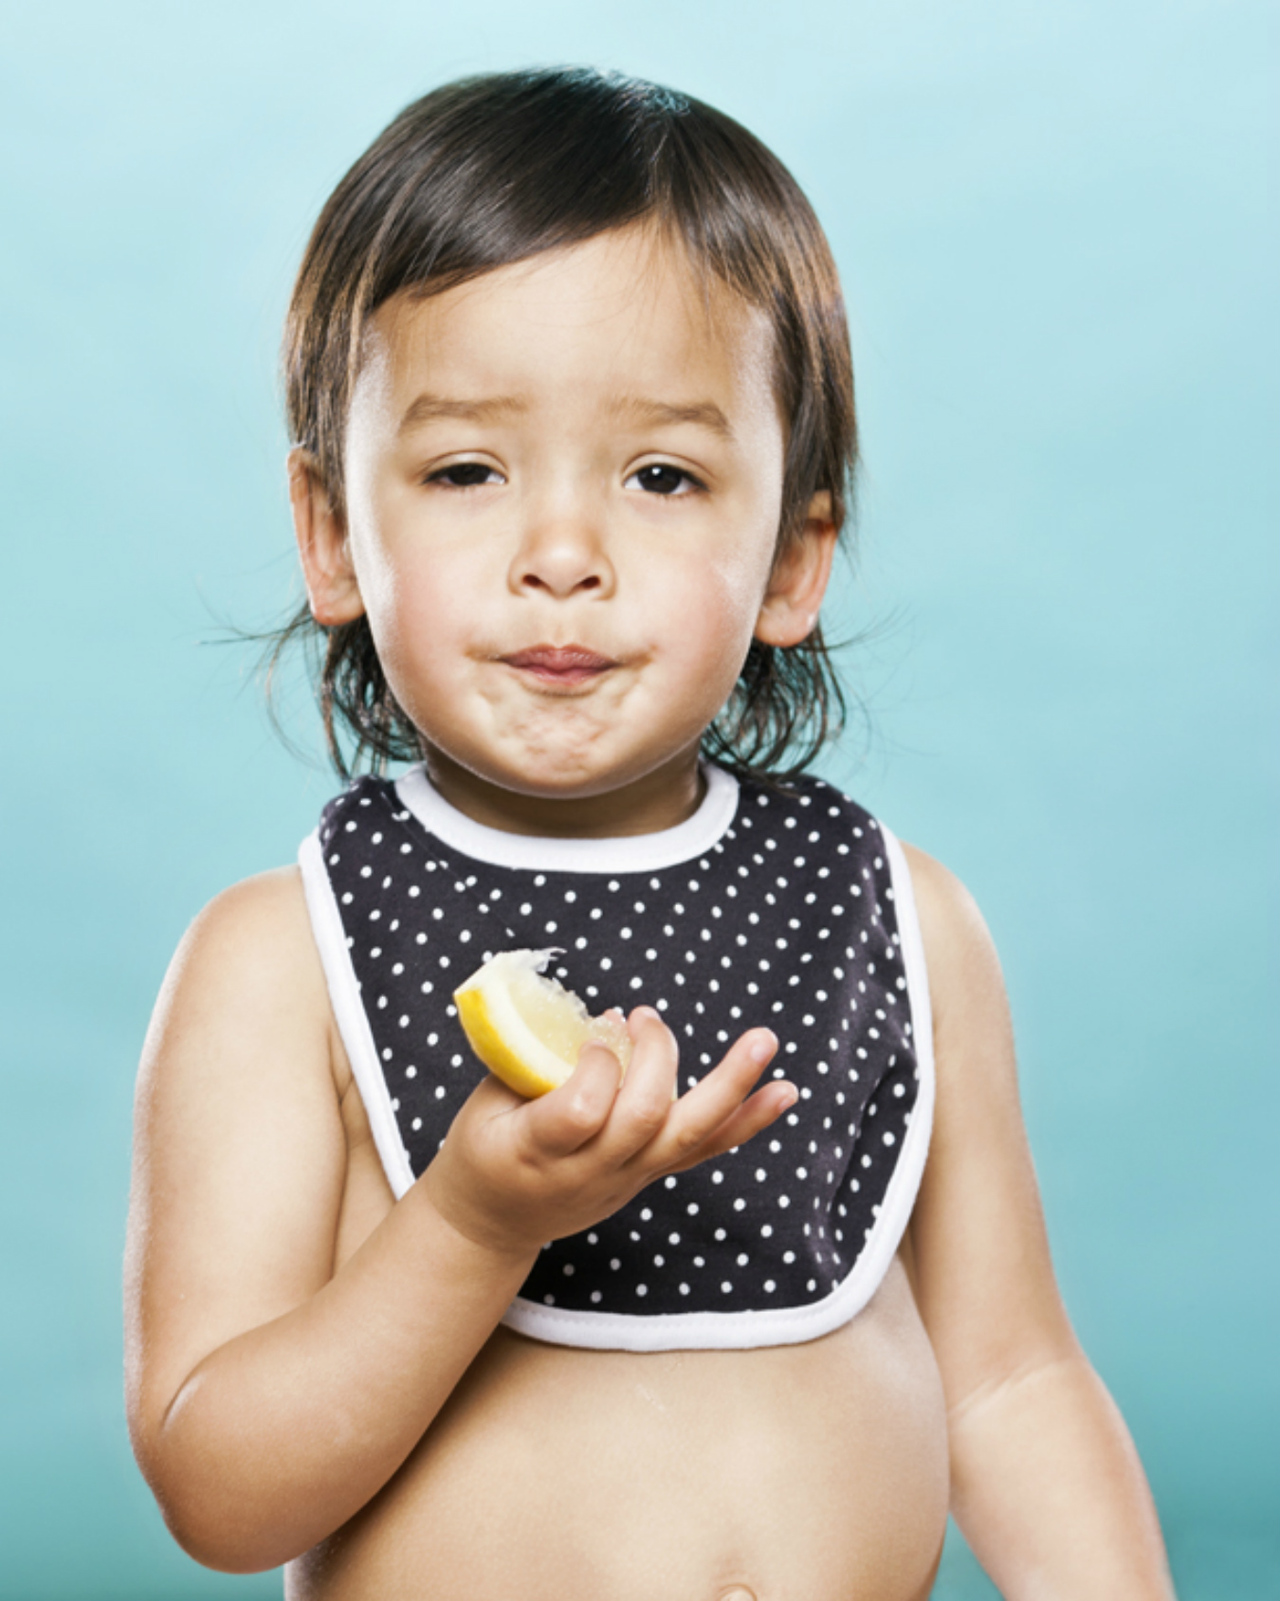 Toddlers Tasting Lemon For the First Time